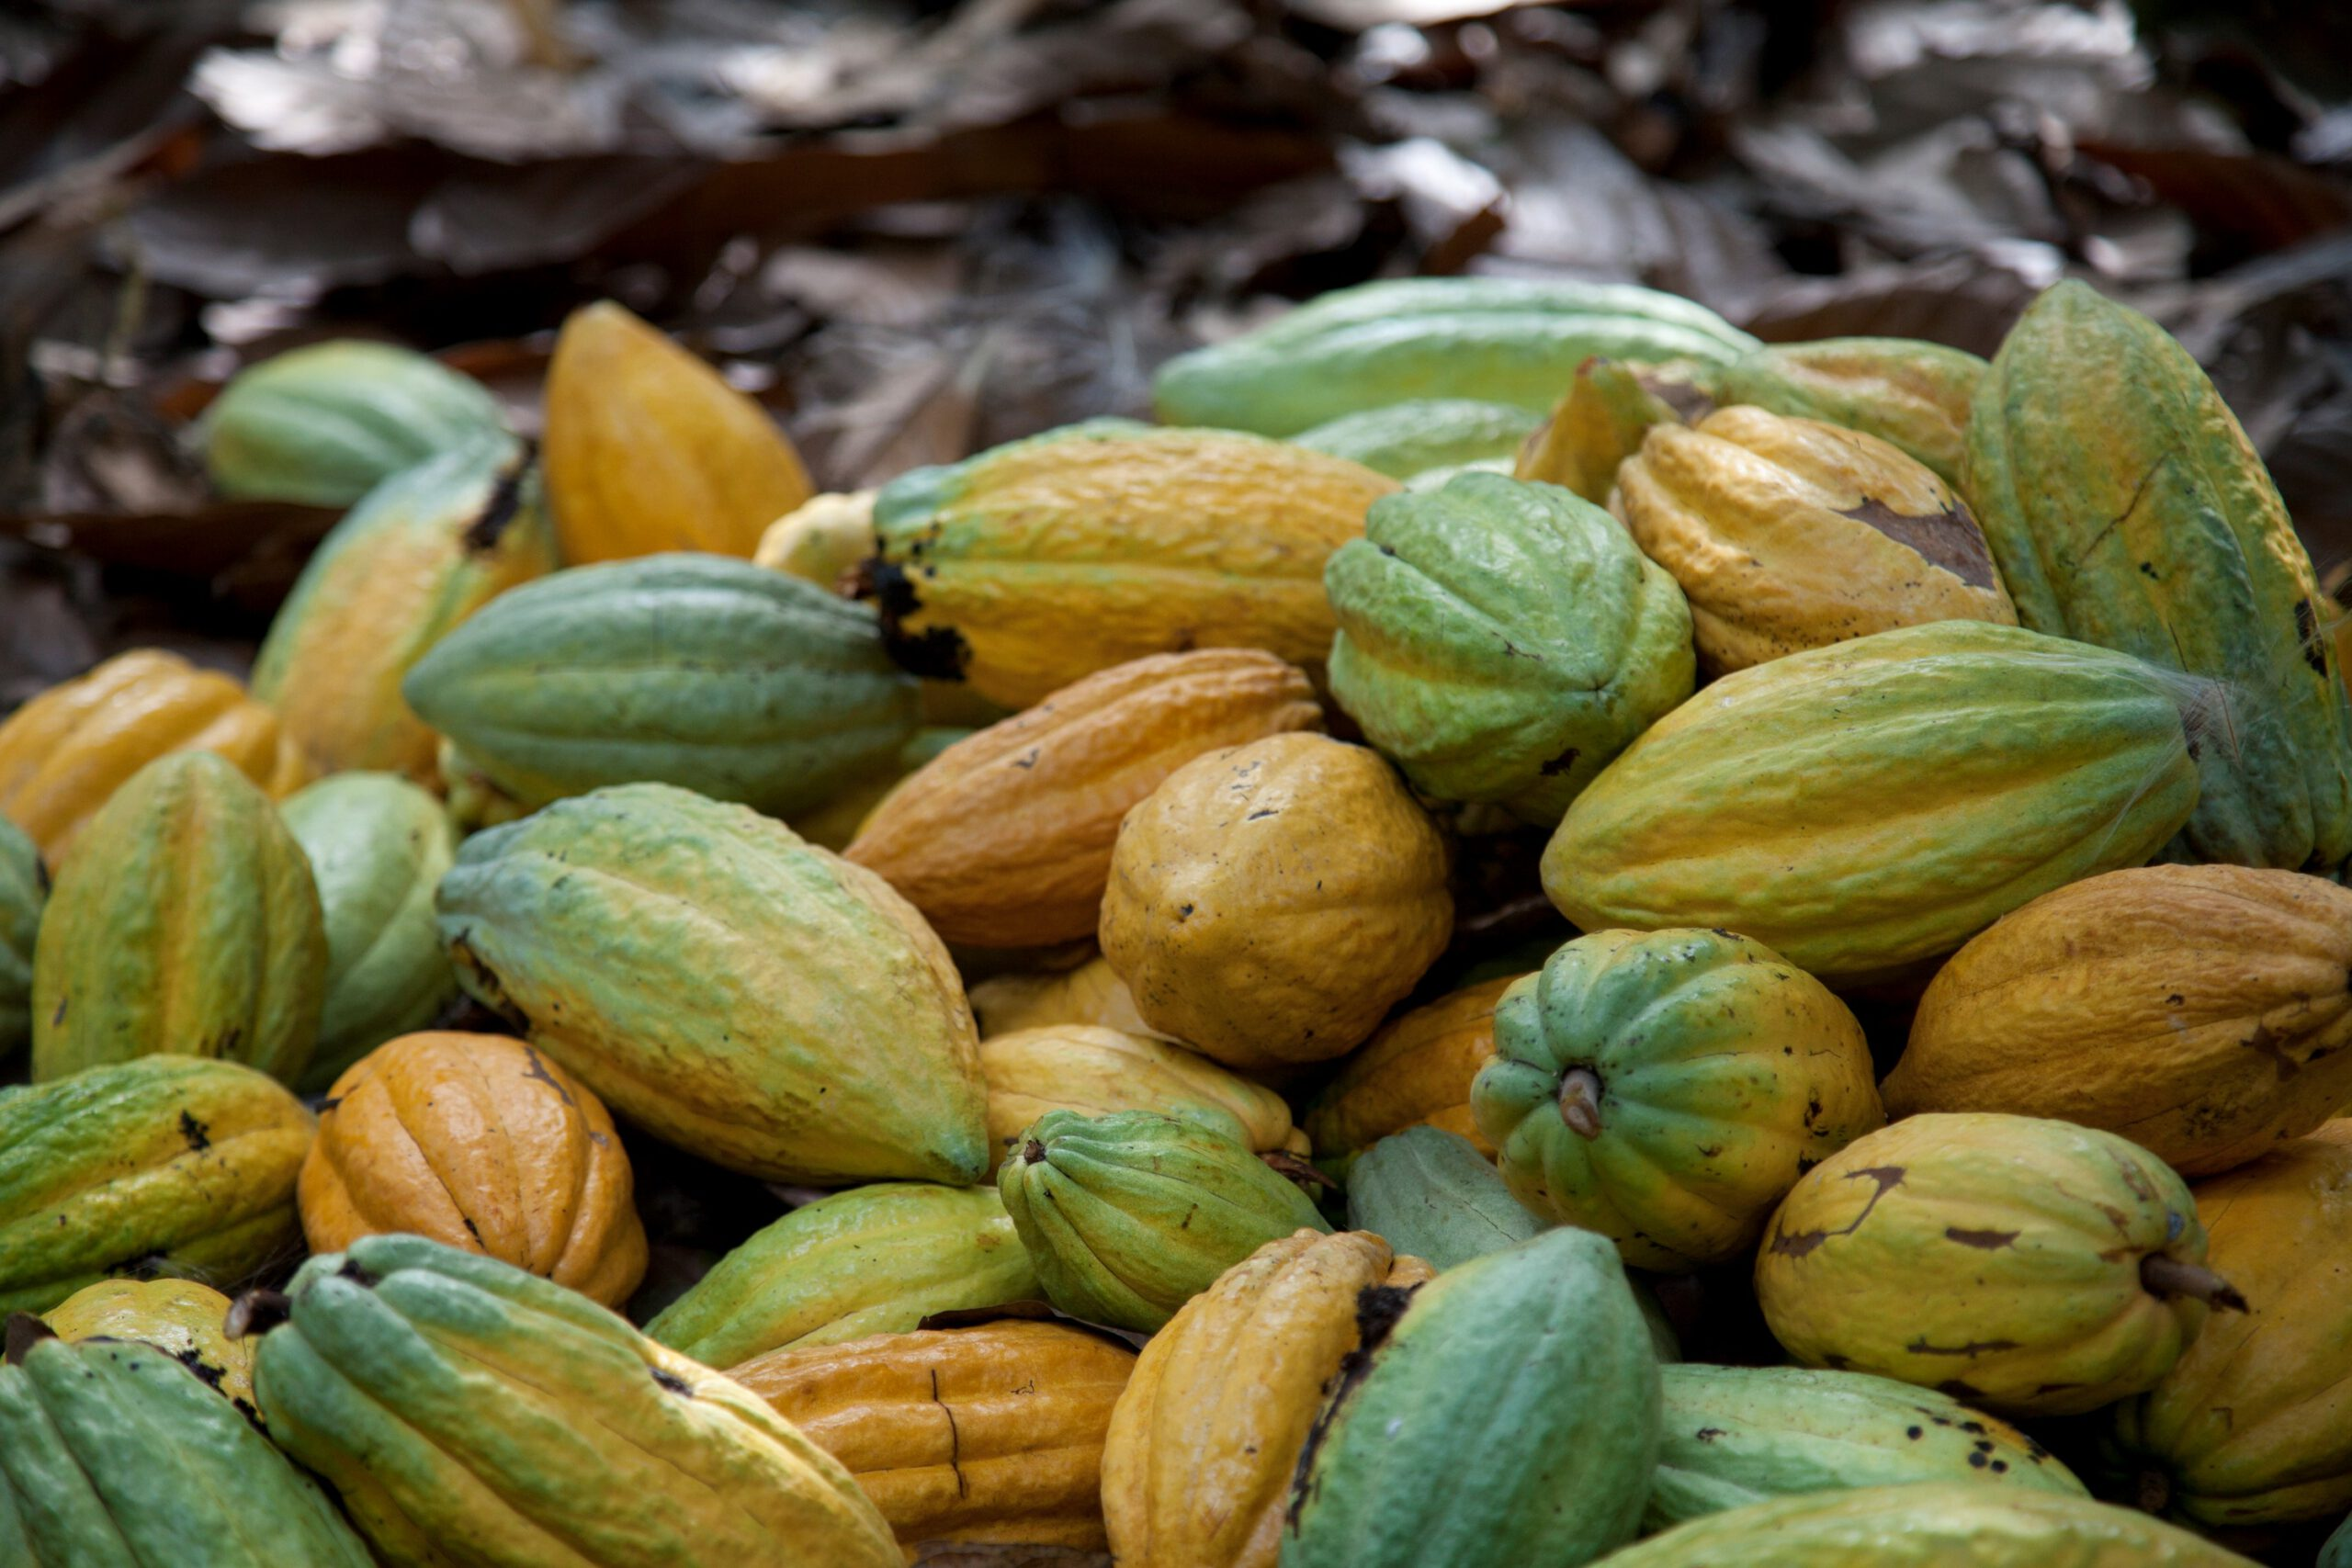 COVID- 19 RESPONSE: 5 things Ghana Cocoa Board (COCOBOD) can reinforce to sustain the Cocoa Sector